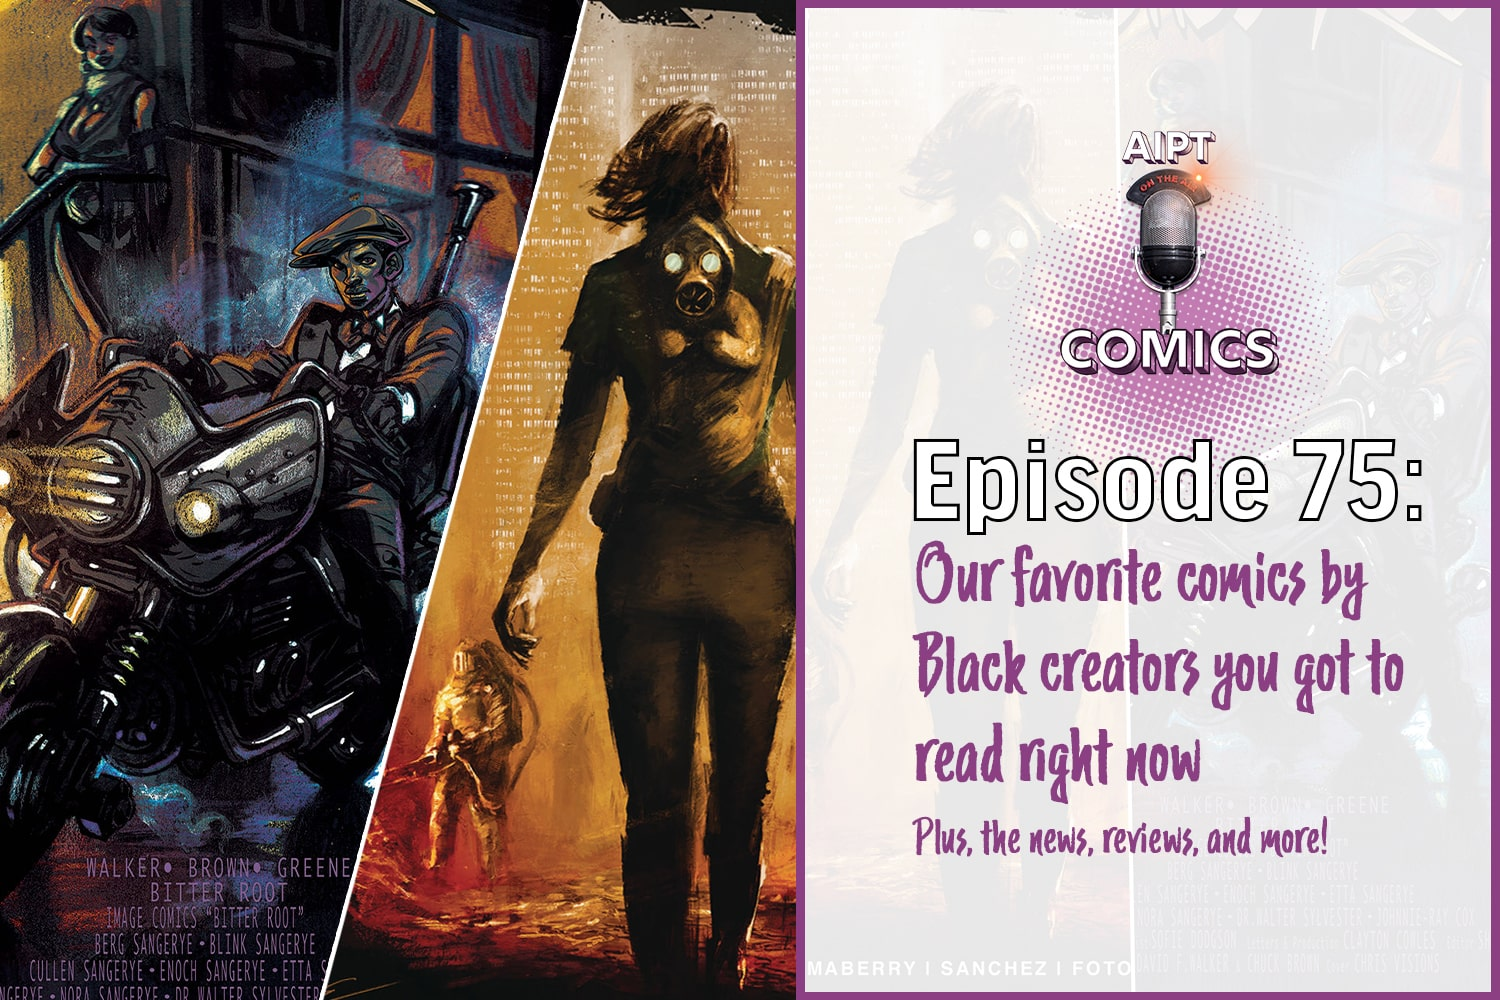 We recap the news, look to next week, and highlight some of our favorite comics by Black creators.